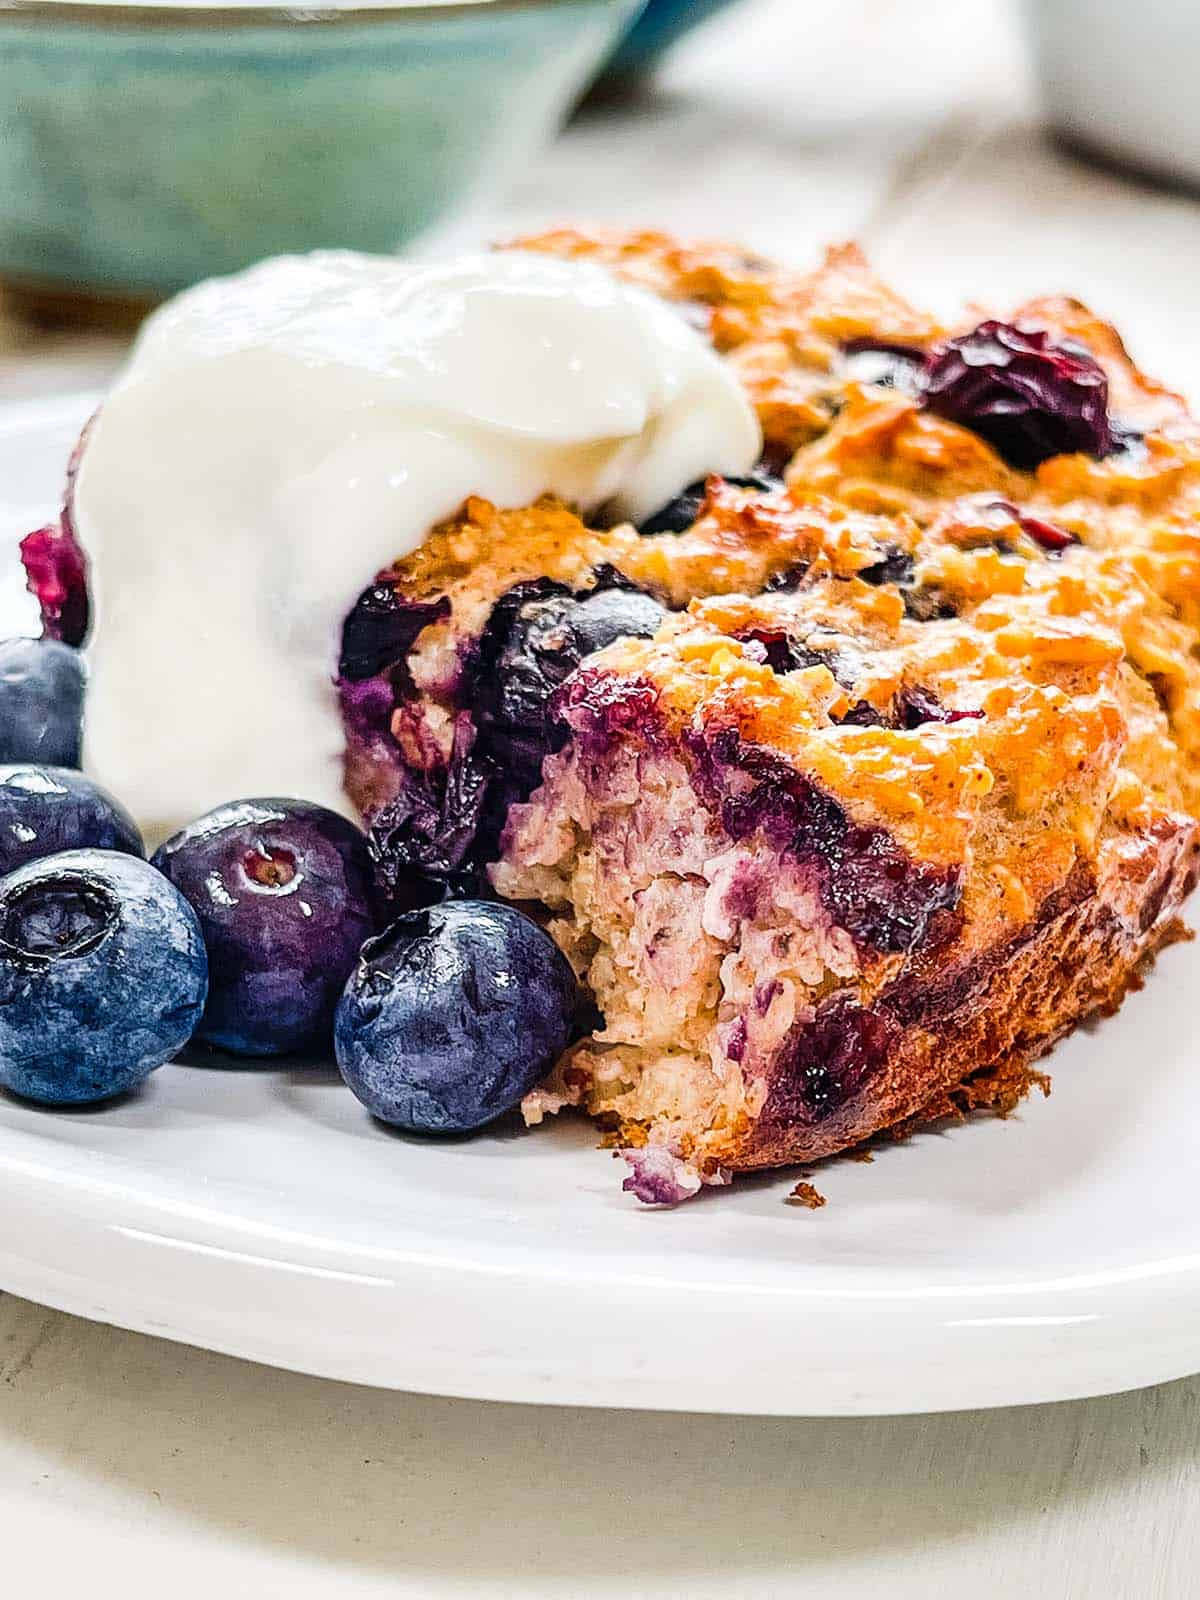 A white plate with baked oatmeal and blueberries and yogurt.